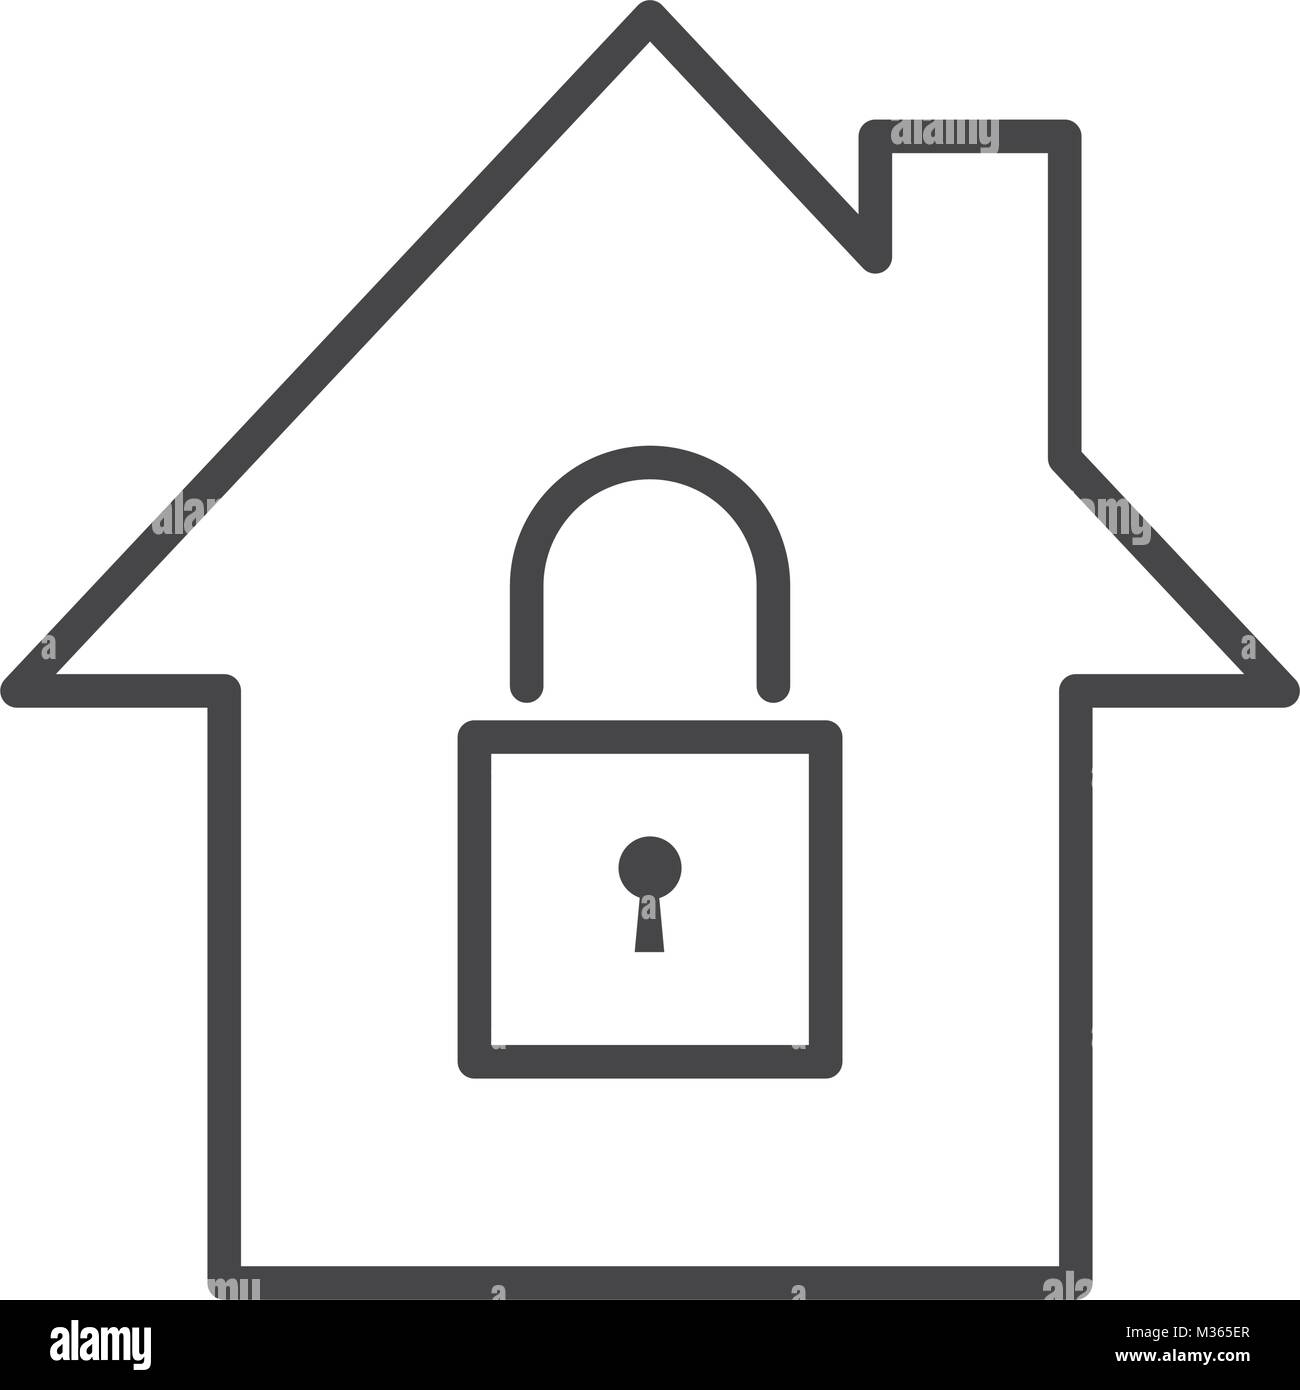 Secure house symbol - Stock Vector